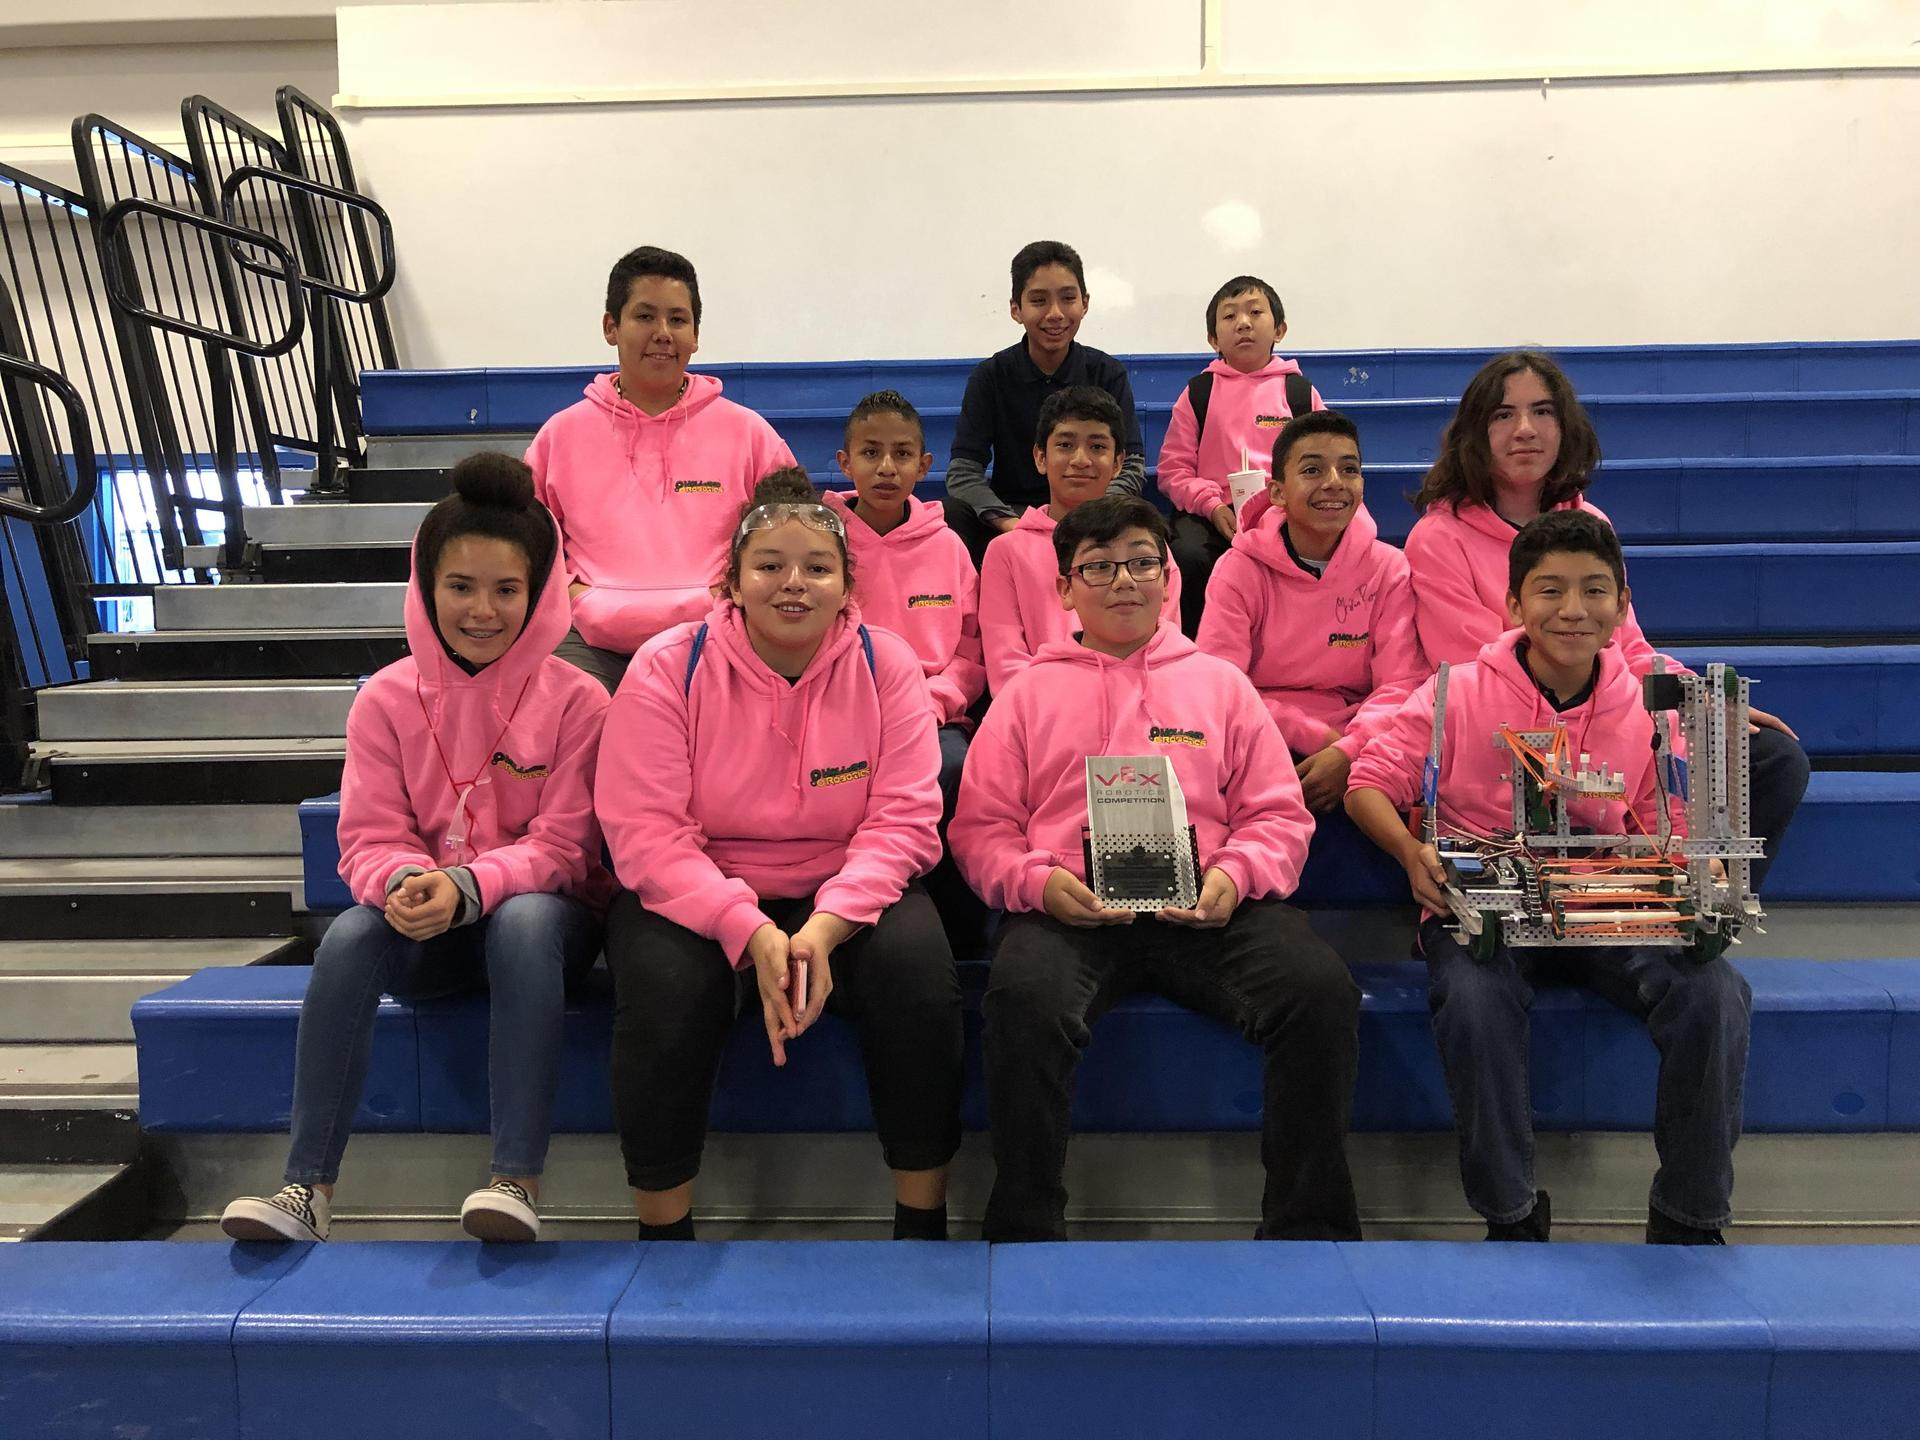 2018-2019 VEX Robotics Competition - Turning Point – Project